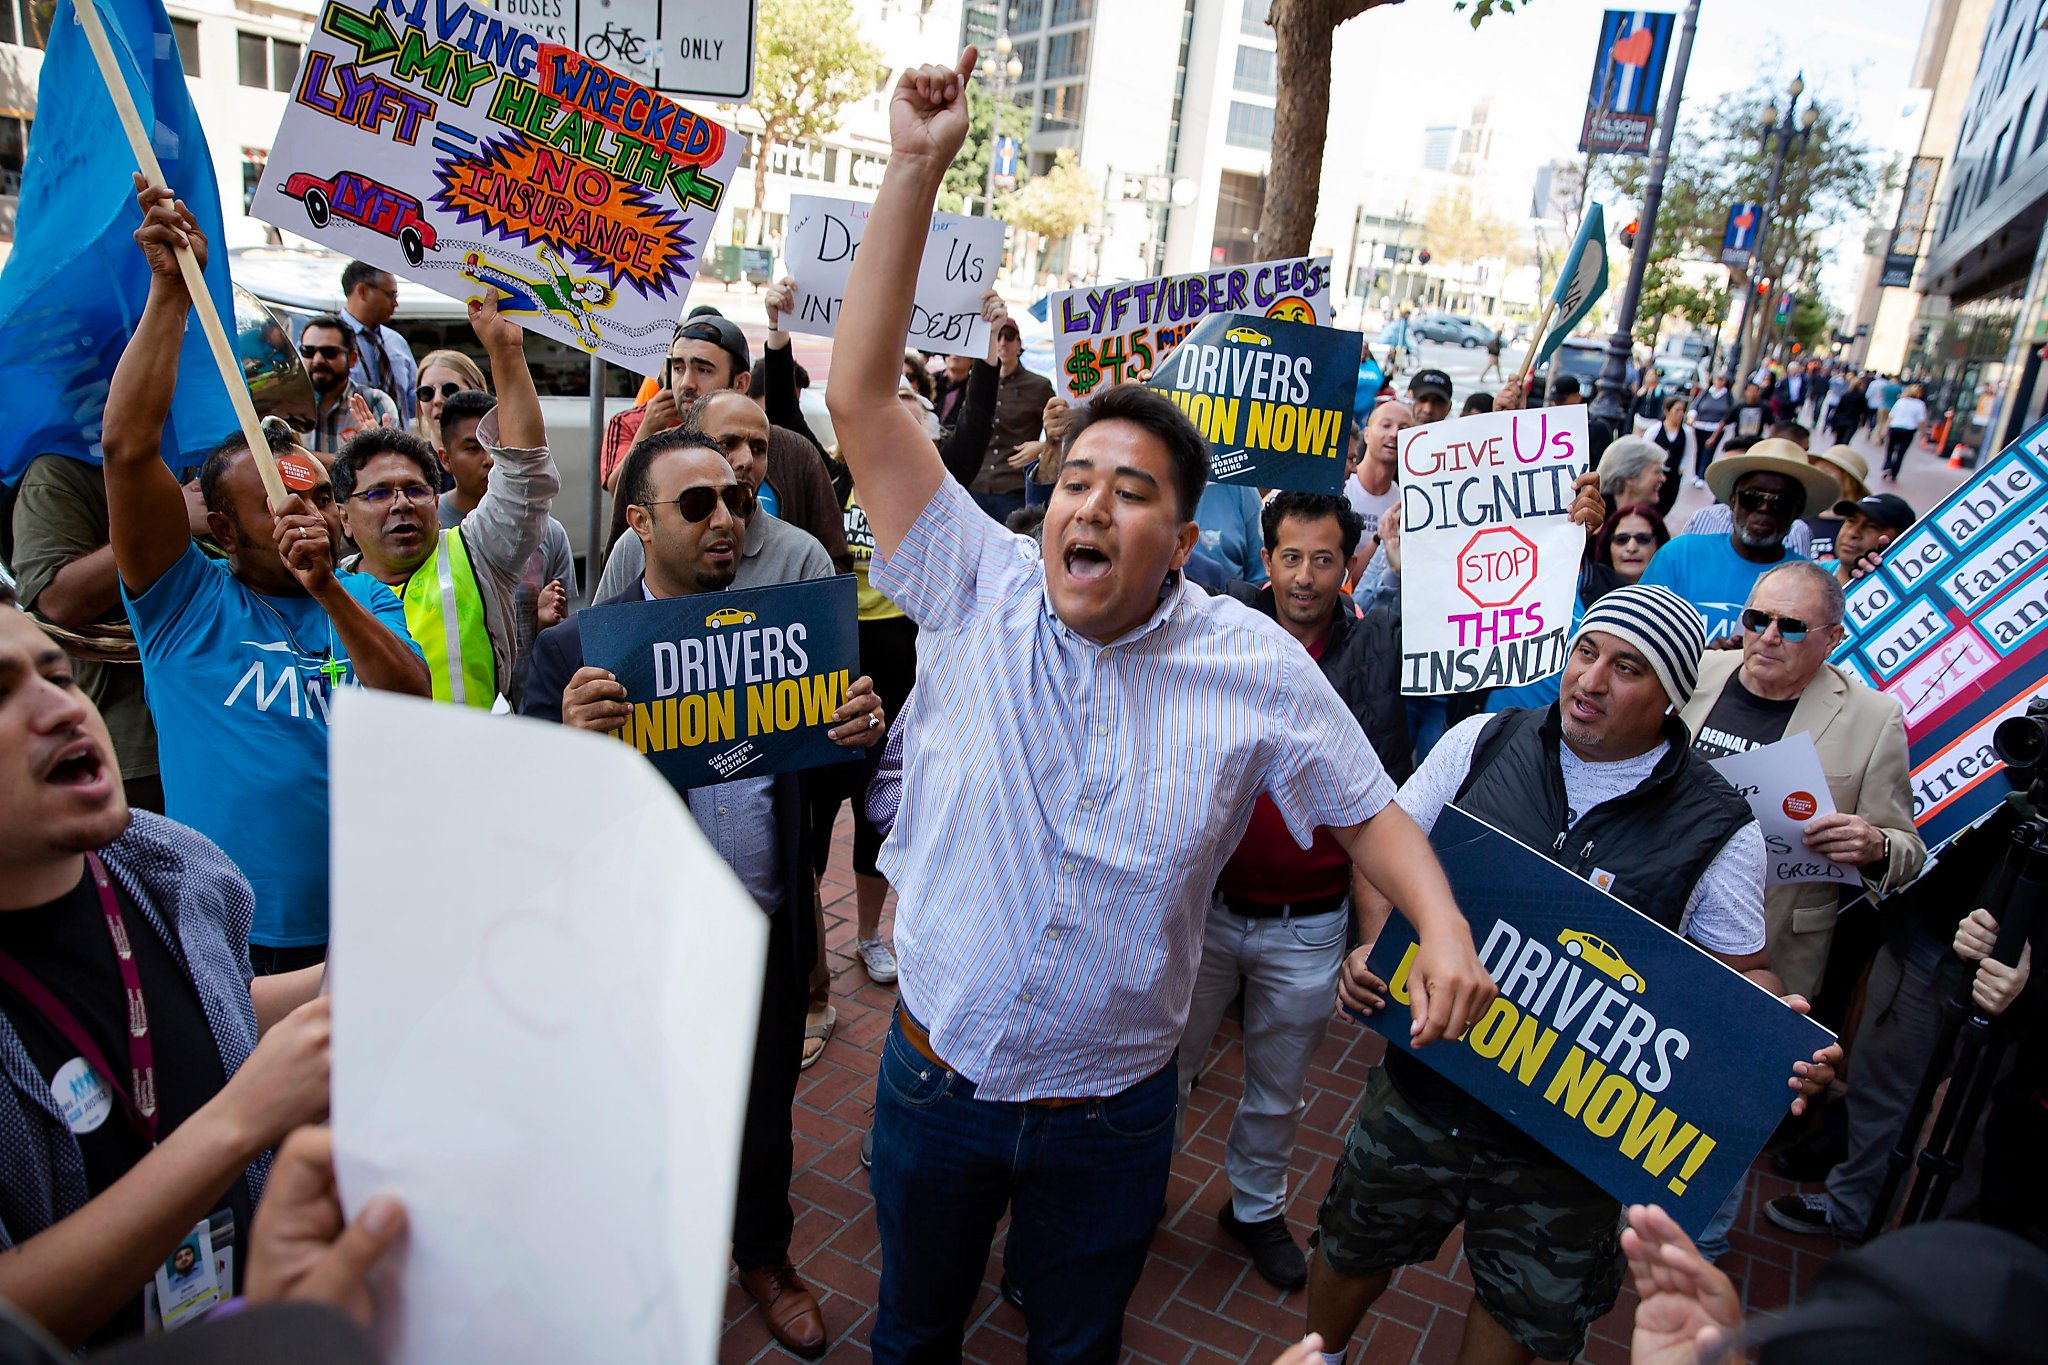 California legislature passes AB5 gig-work bill, which could